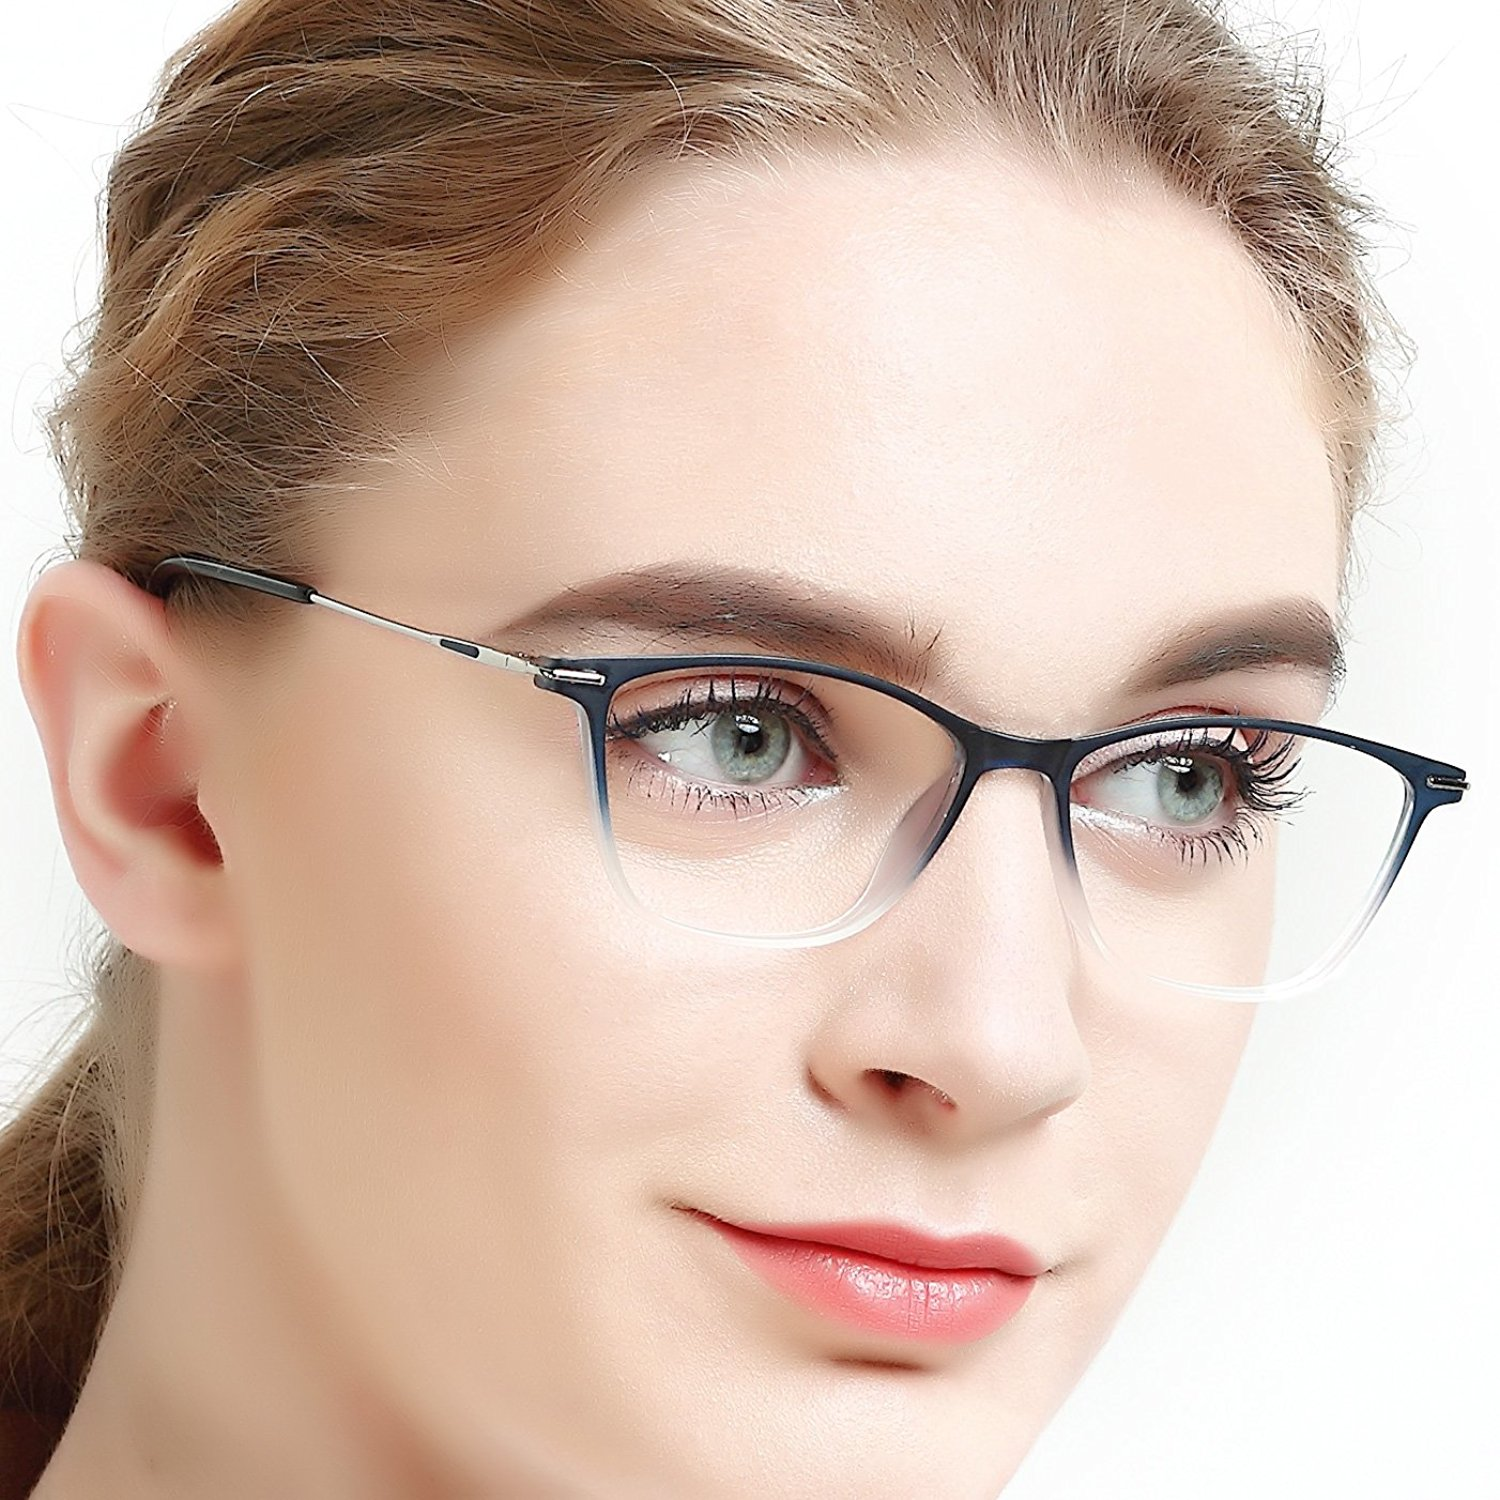 0b4a8f8814 Get Quotations · Eyewear Frames-OCCI CHIARI-Rectangle Lightweight Non-Prescription  Eyeglasses Frame with Clear Lenses